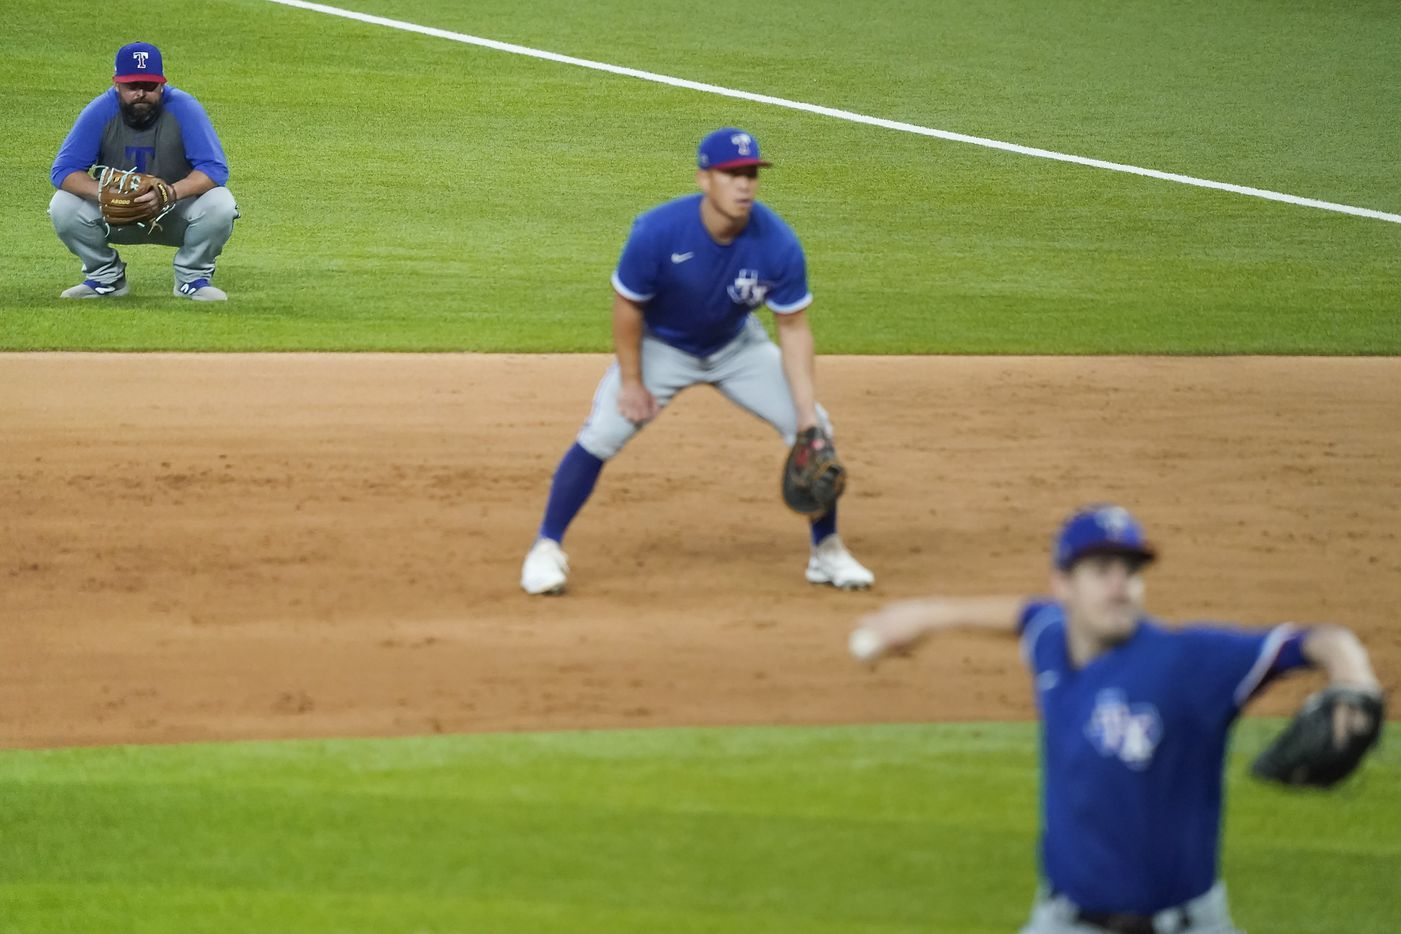 Texas Rangers infield coordinator Kenny Holmberg watches from the field as Jason Bahr pitches and Rob Refsnyder plays at first base during a game between players at the team's alternate training site at Globe Life Field on Saturday, Sept. 19, 2020.